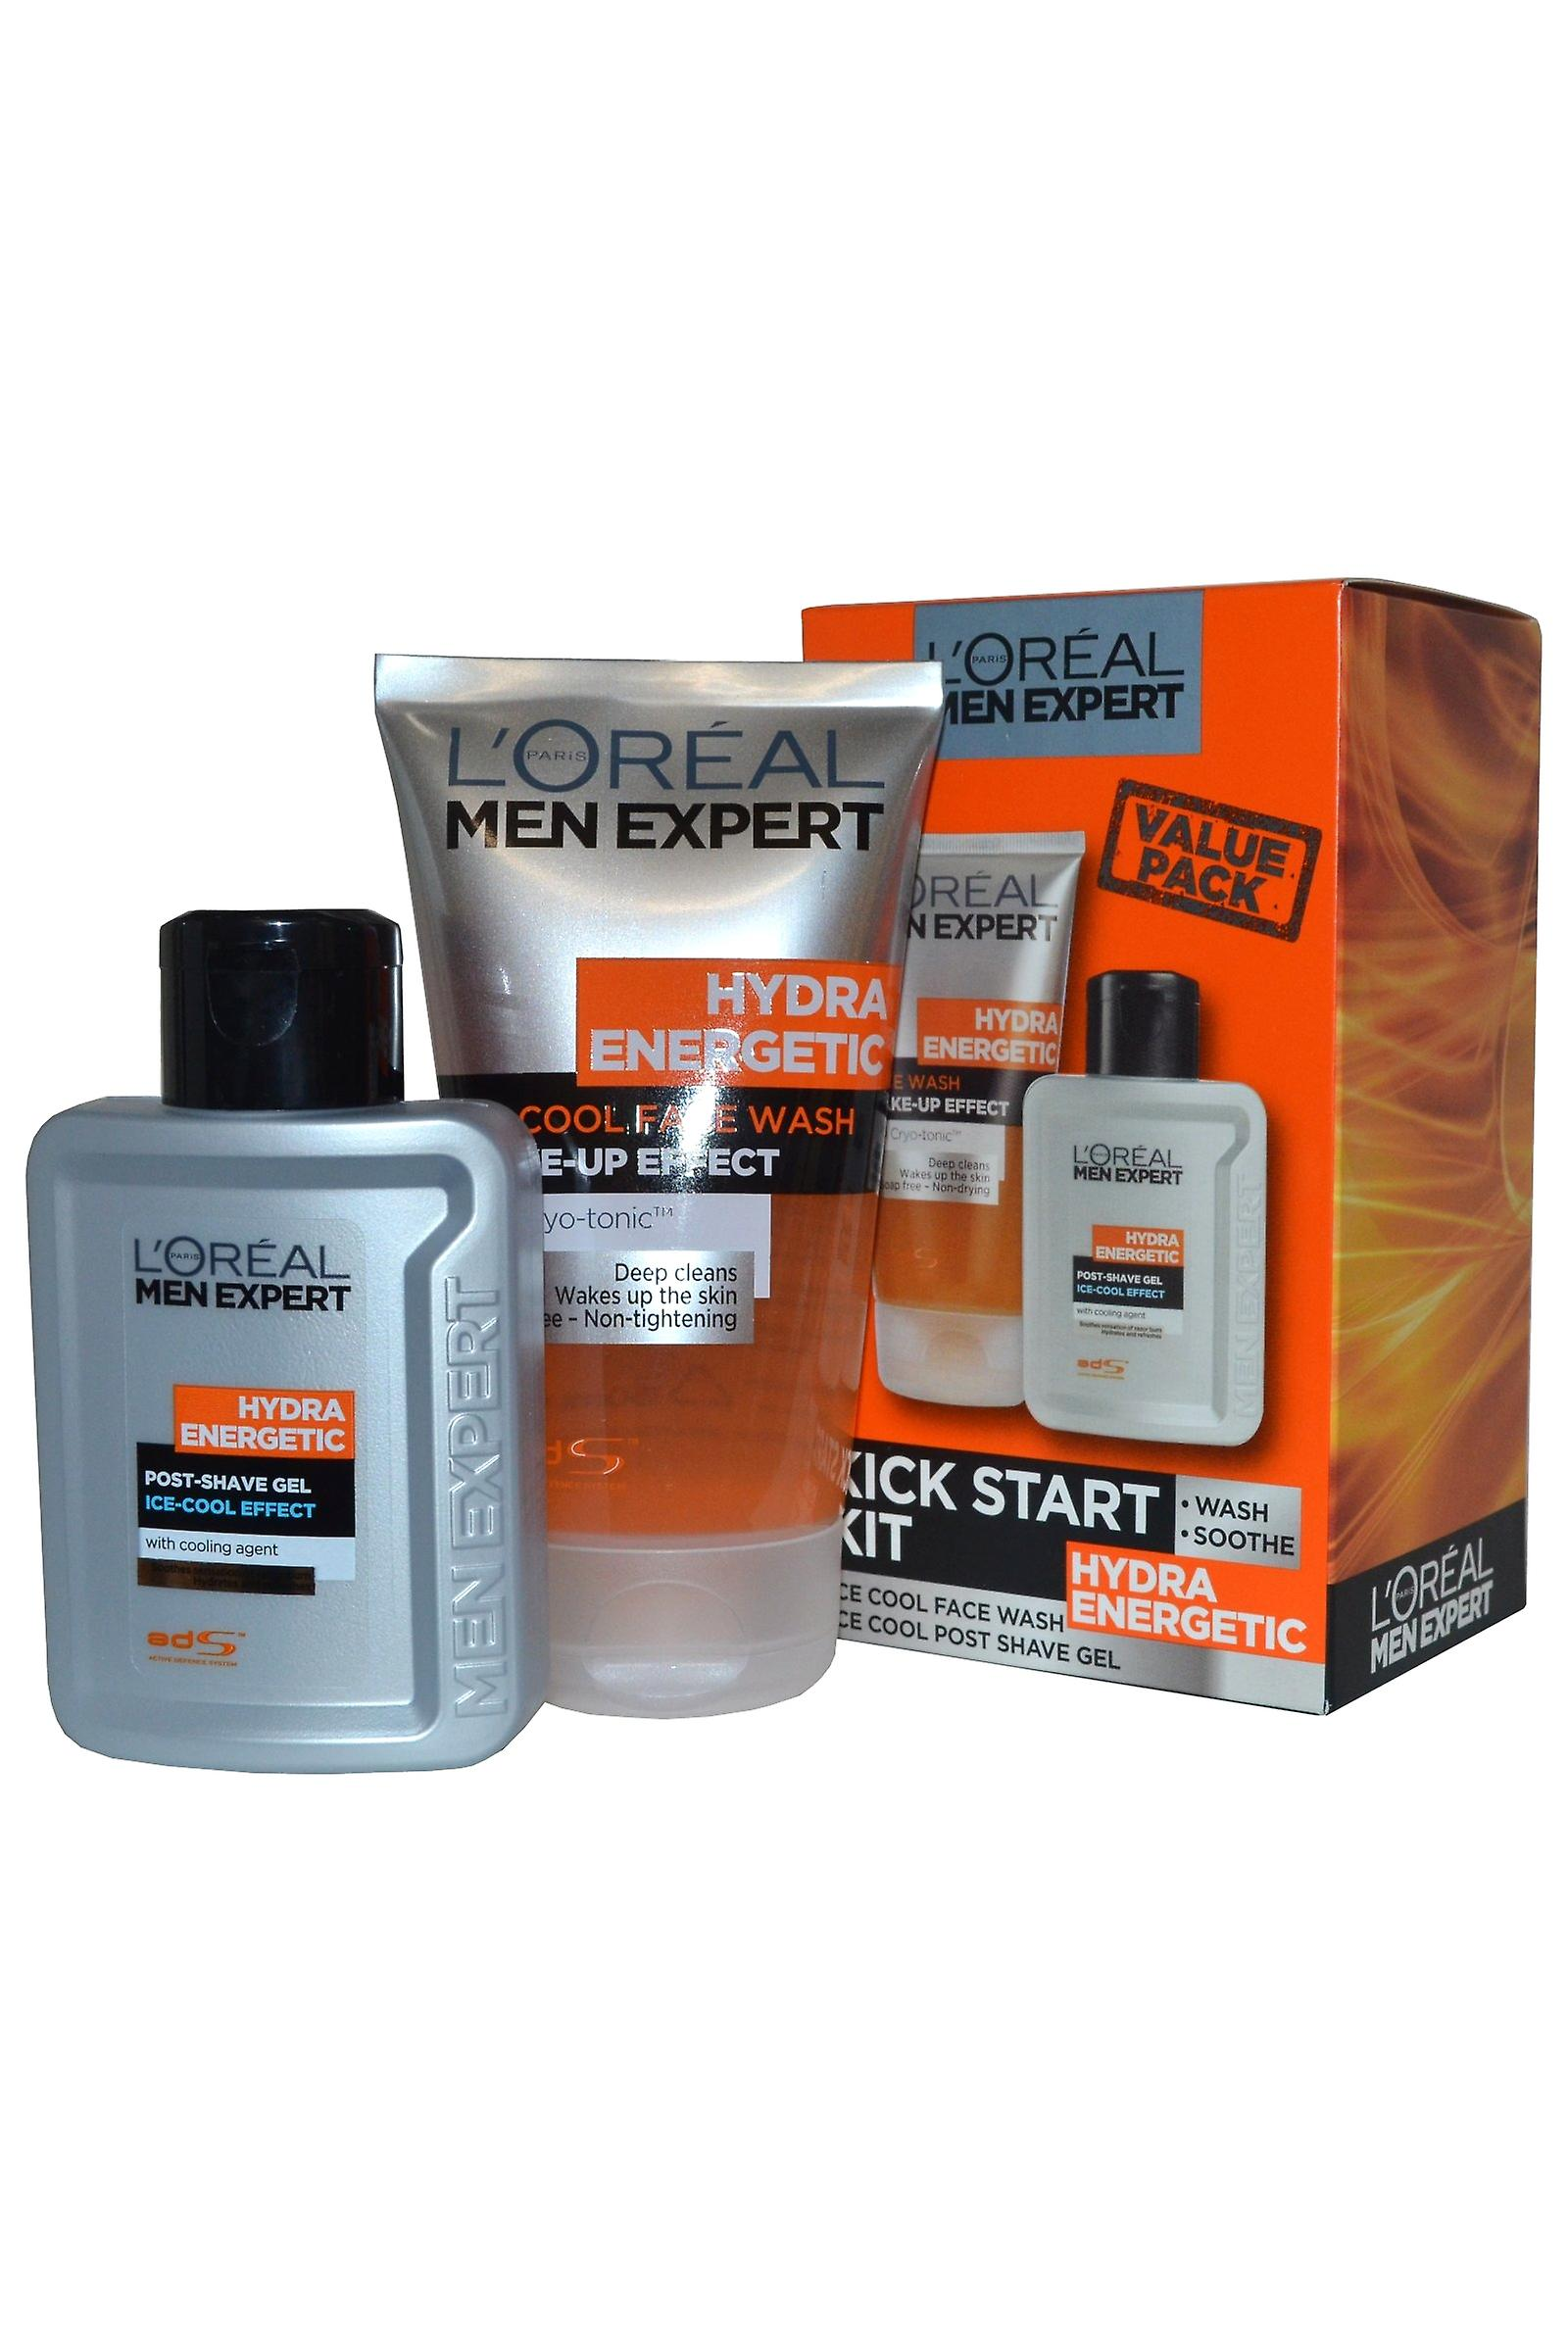 Men Expert by L'Oreal Kick Start Kit Hydra Energetic Face Wash and Post Shave Gel